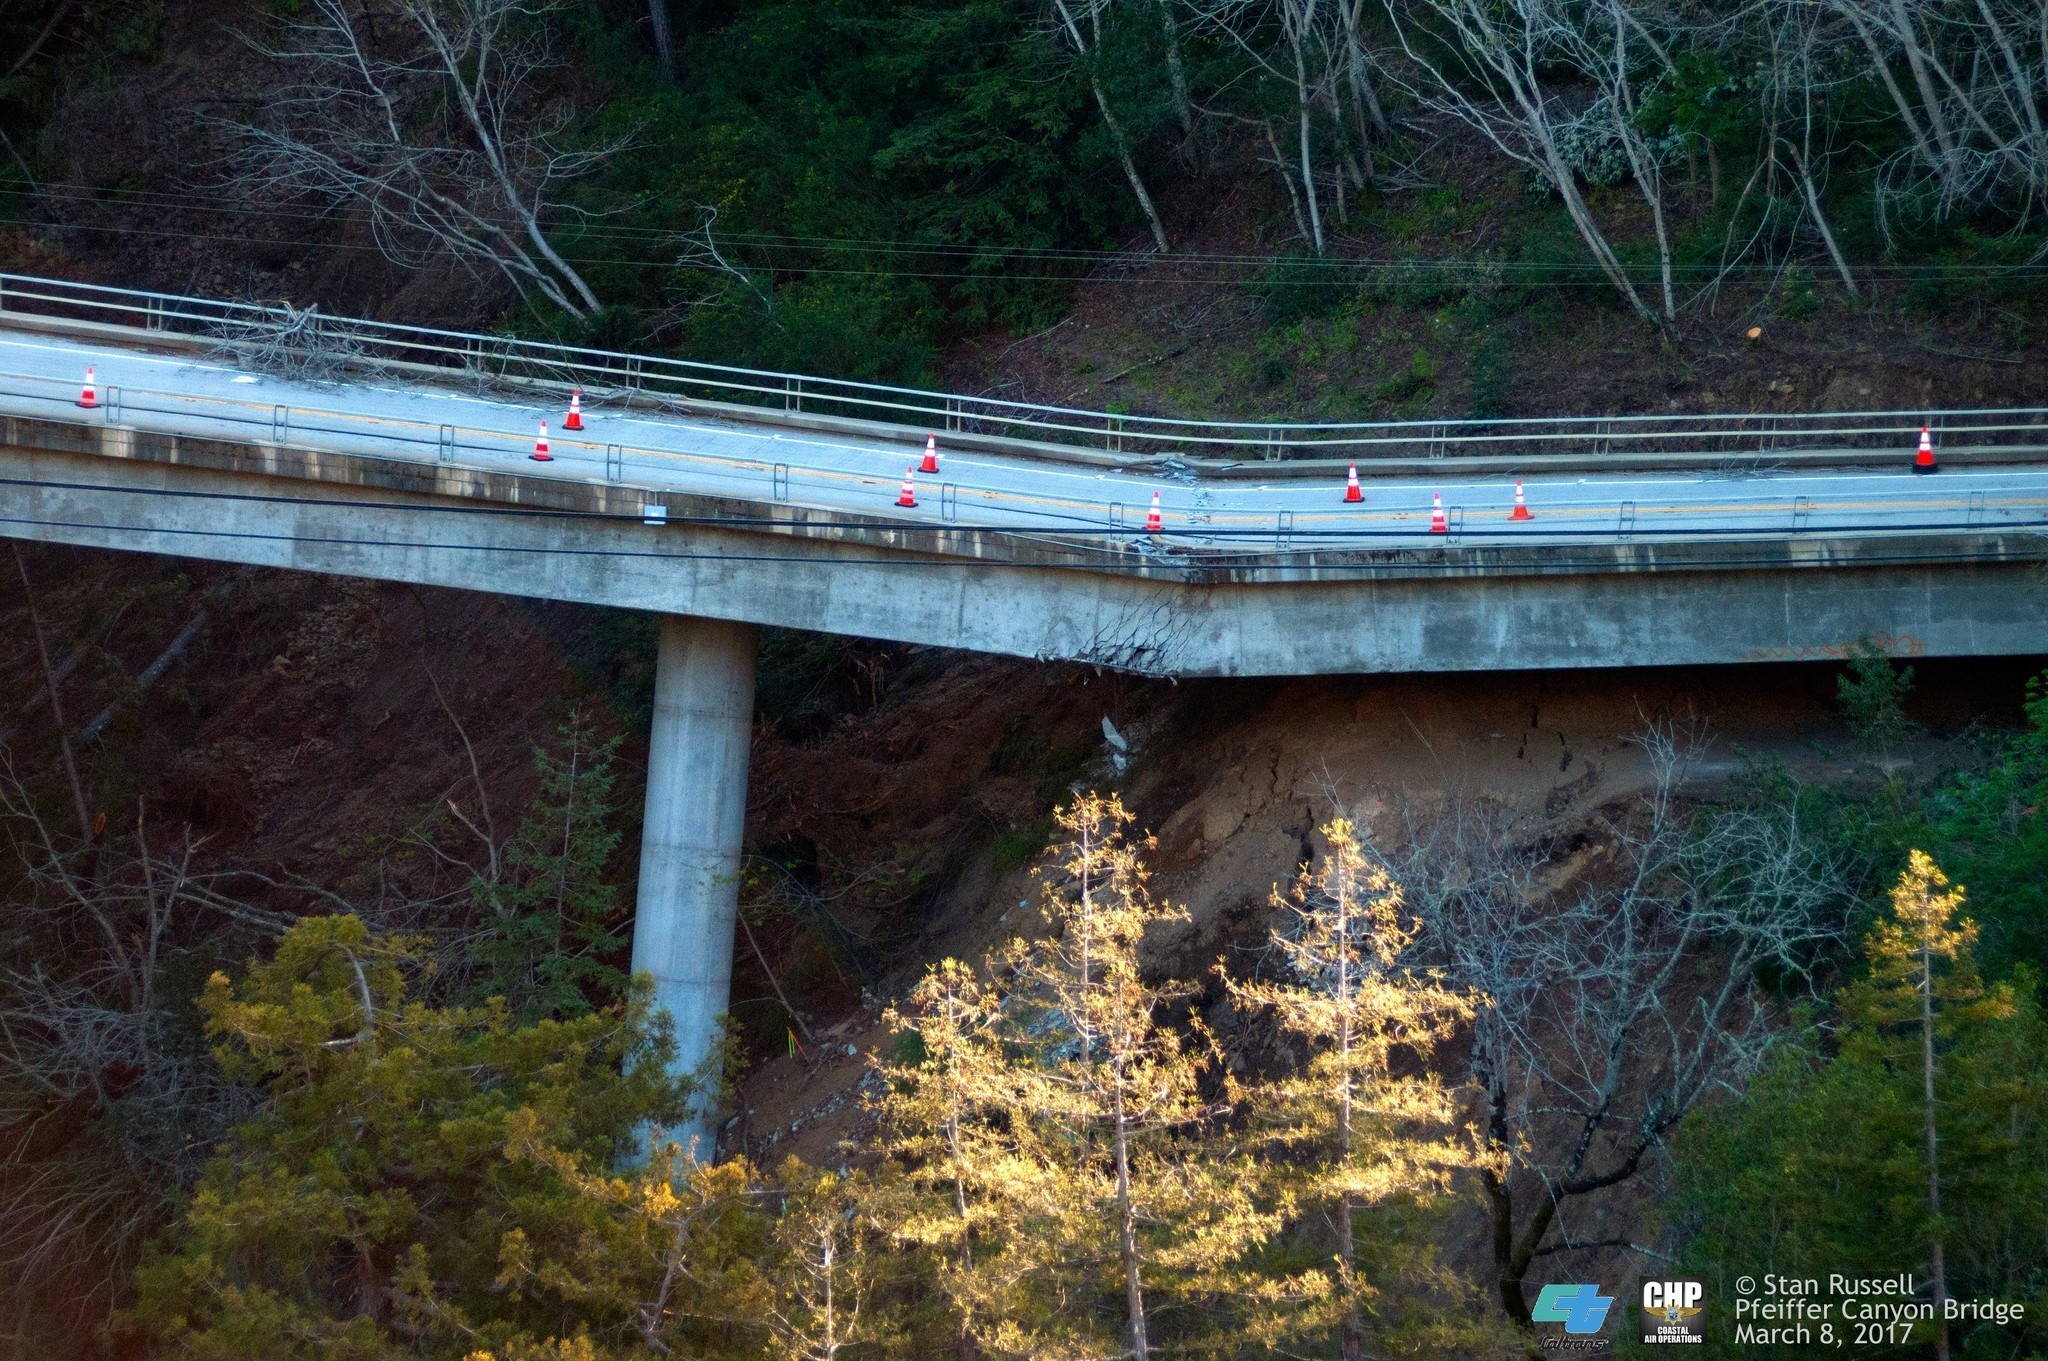 Pfeiffer Canyon Bridge on Highway 1 in Big Sur cracked and continues to slide down the mountainside. Caltrans released this photo a week ago. (Stan Russell / Big Sur Chamber of Commerce)